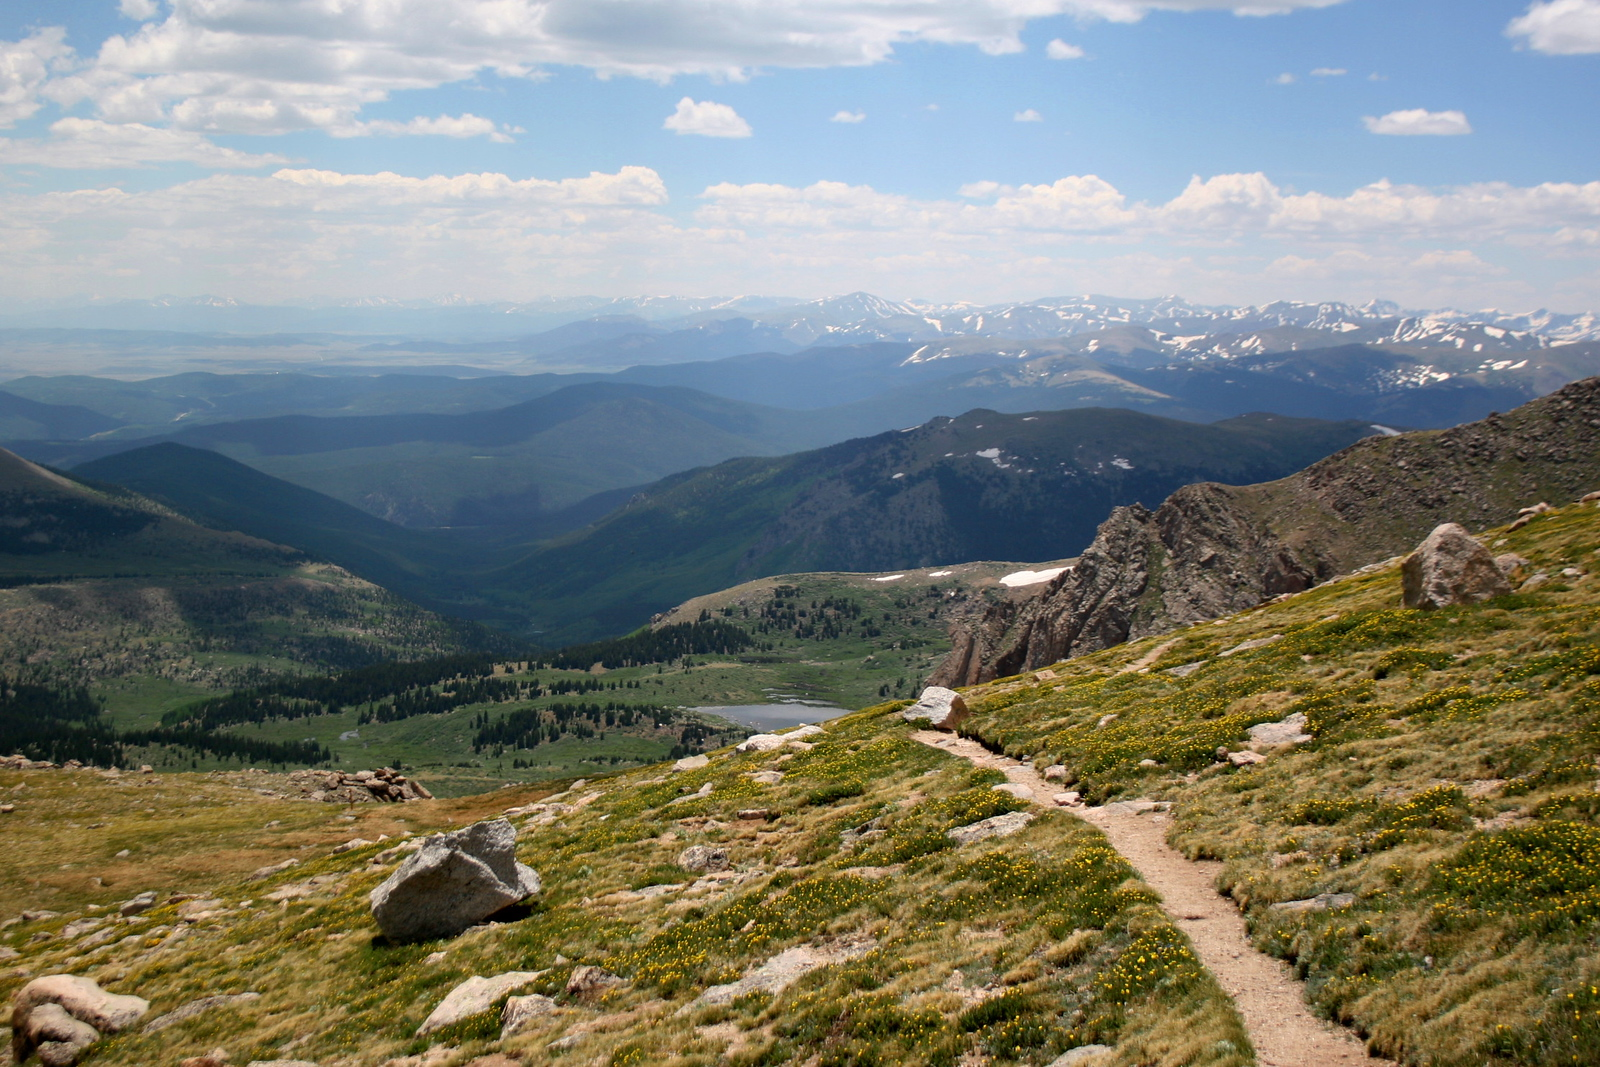 <i>13,300'</i> -  C'mon, you know you want to hike...